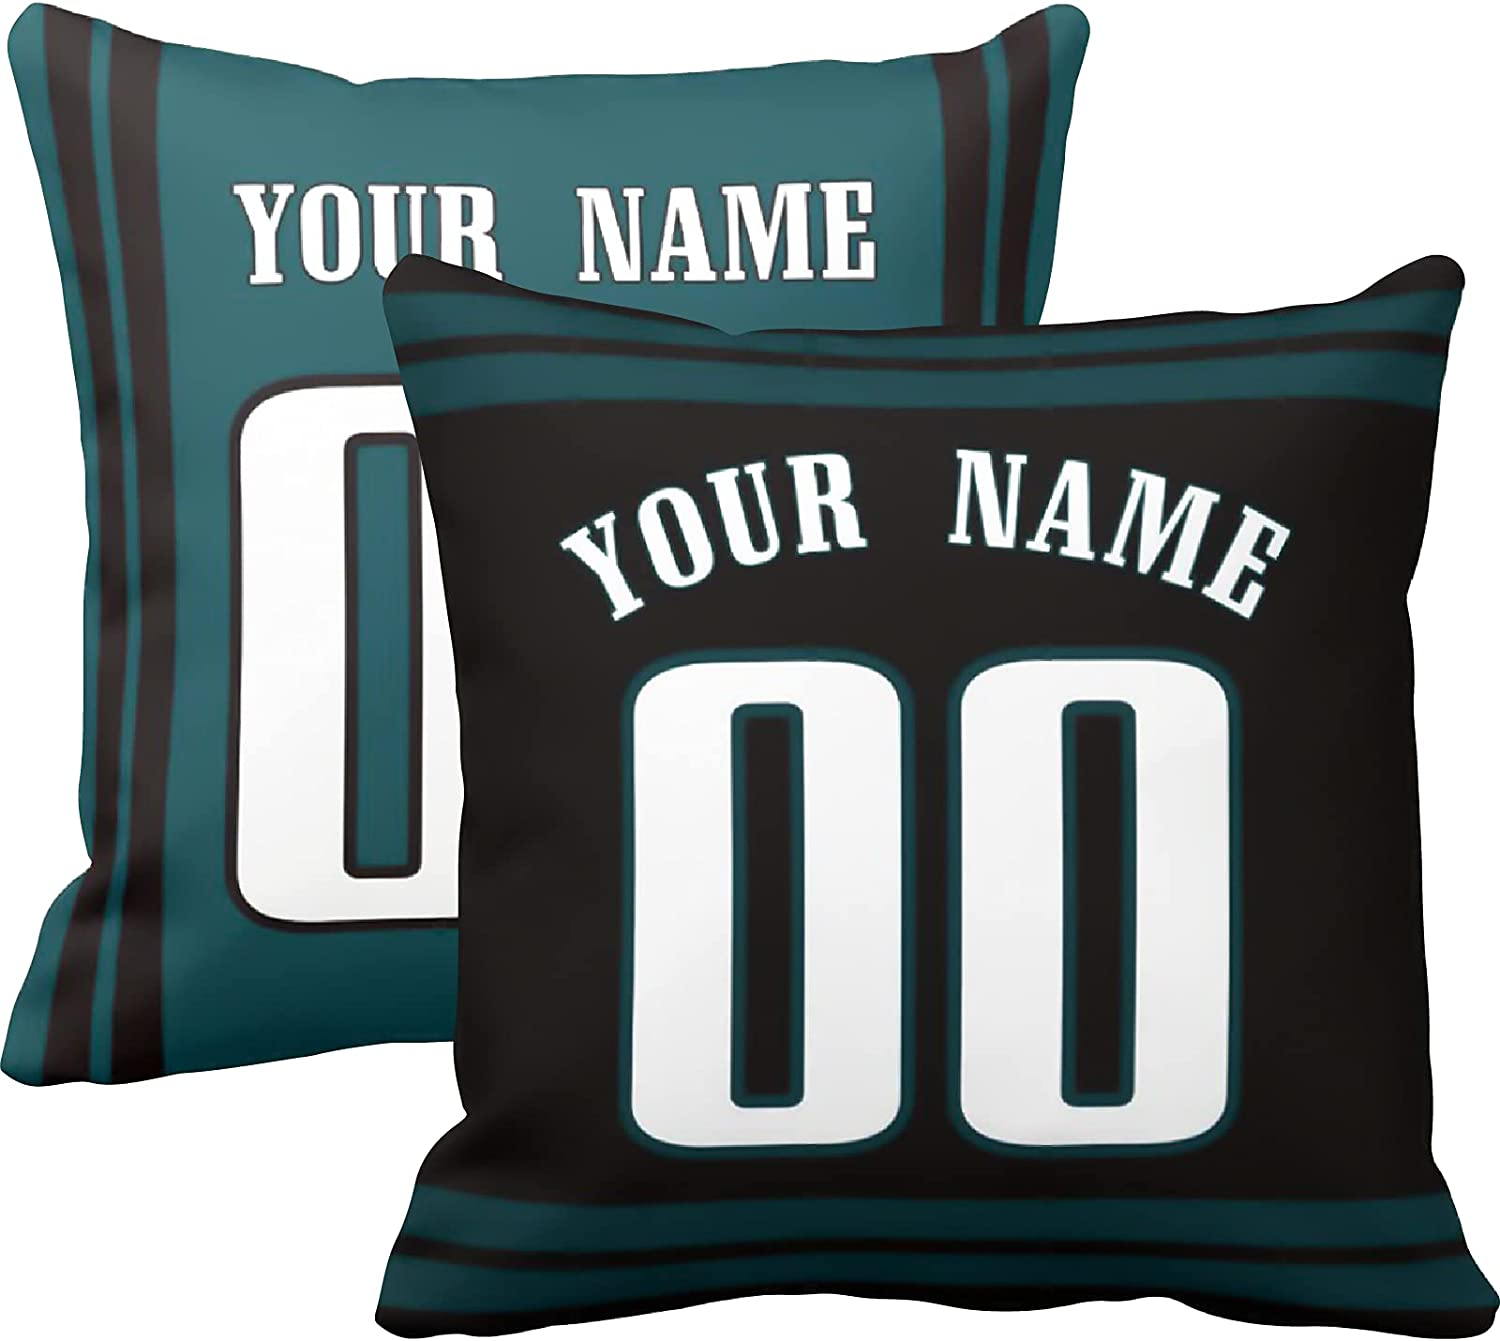 Philadelphia Throw Pillow Custom Personalized Max 62% OFF Numbe Any Outlet ☆ Free Shipping Name and